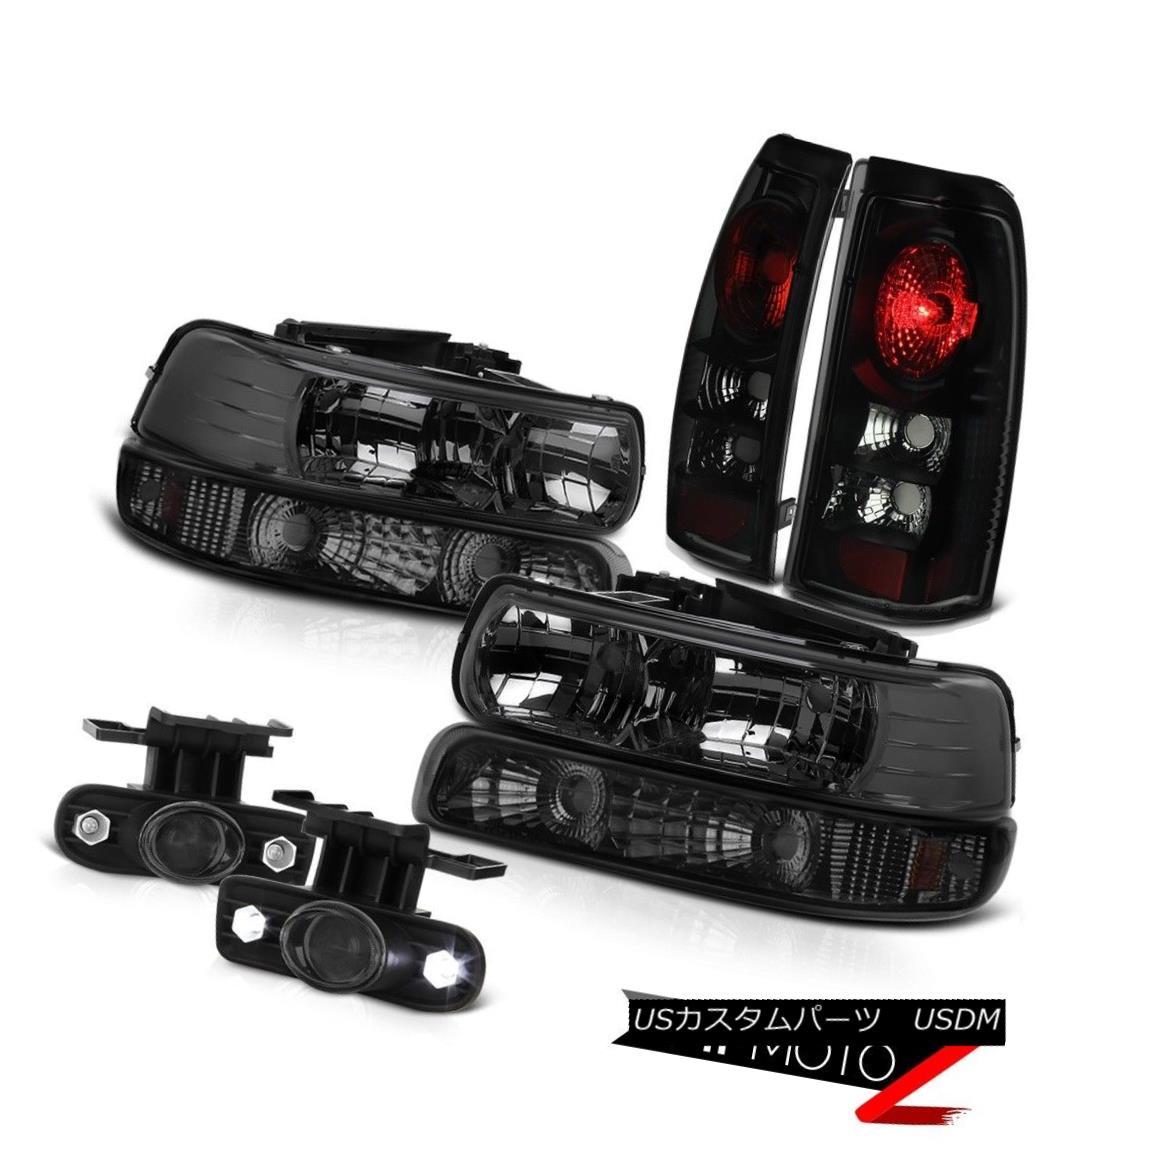 テールライト 1999-2002 Chevrolet Silverado PickUp [SMOKE] Headlight Tail Light Bumper Foglamp 1999-2002 Chevrolet Silverado PickUp [SMOKE]ヘッドライトテールライトバンパーフォグライト